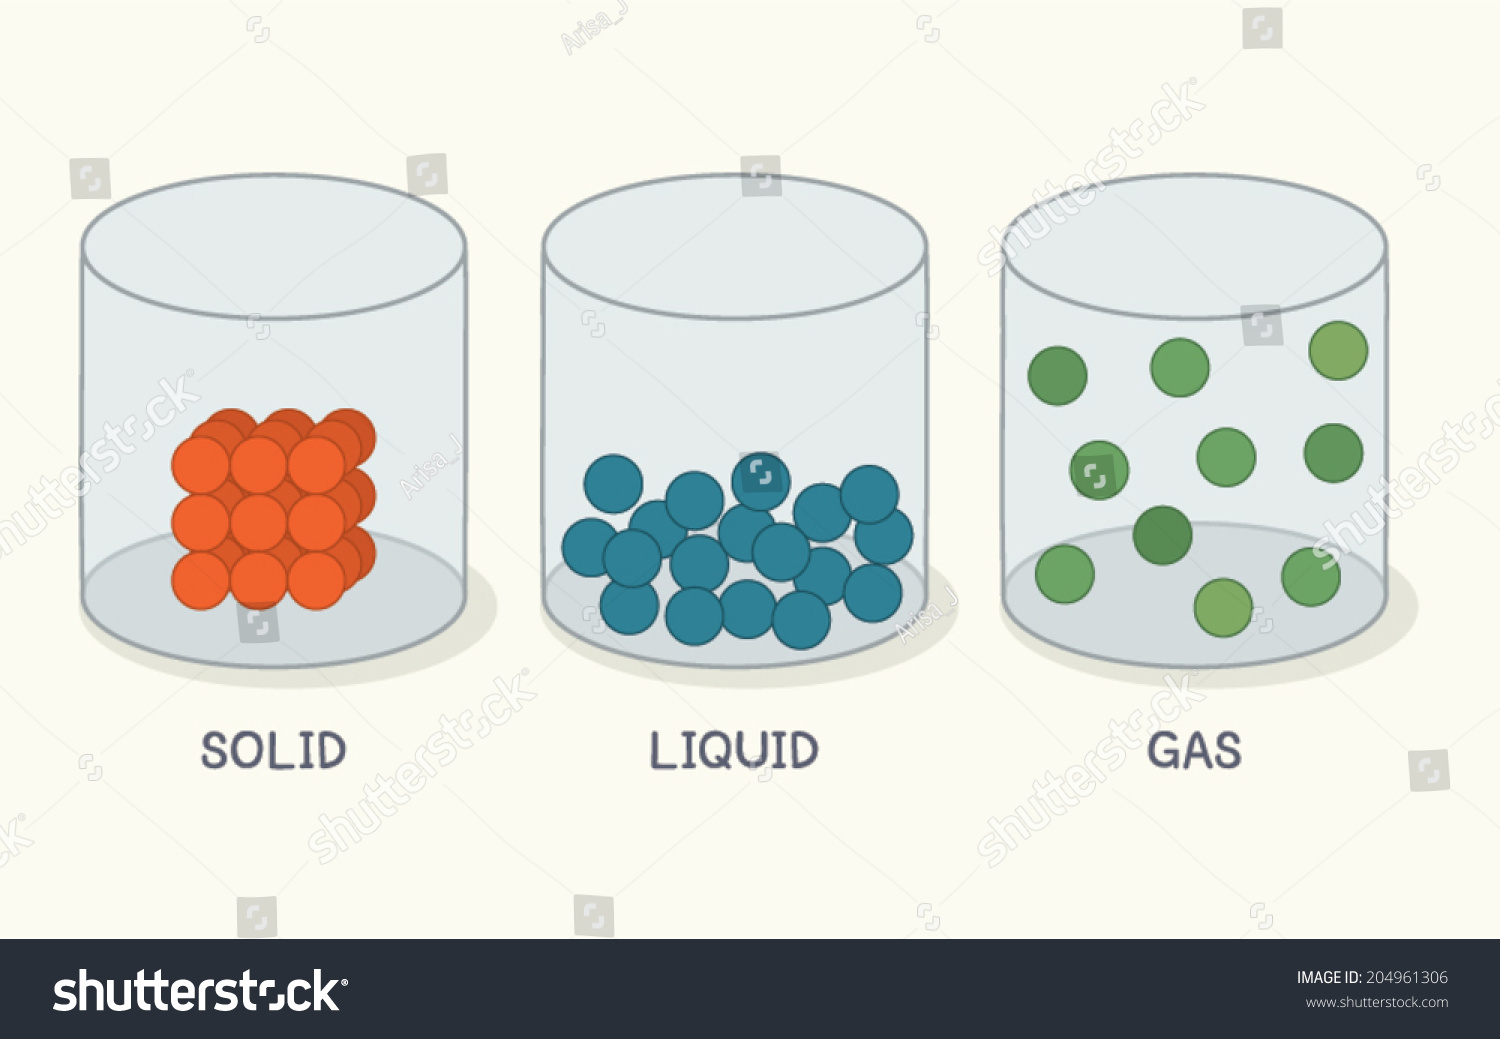 state matter solid liquid gas vector stock vector 204961306 rh shutterstock com solid liquid gas clipart black and white Examples of Solid Matter